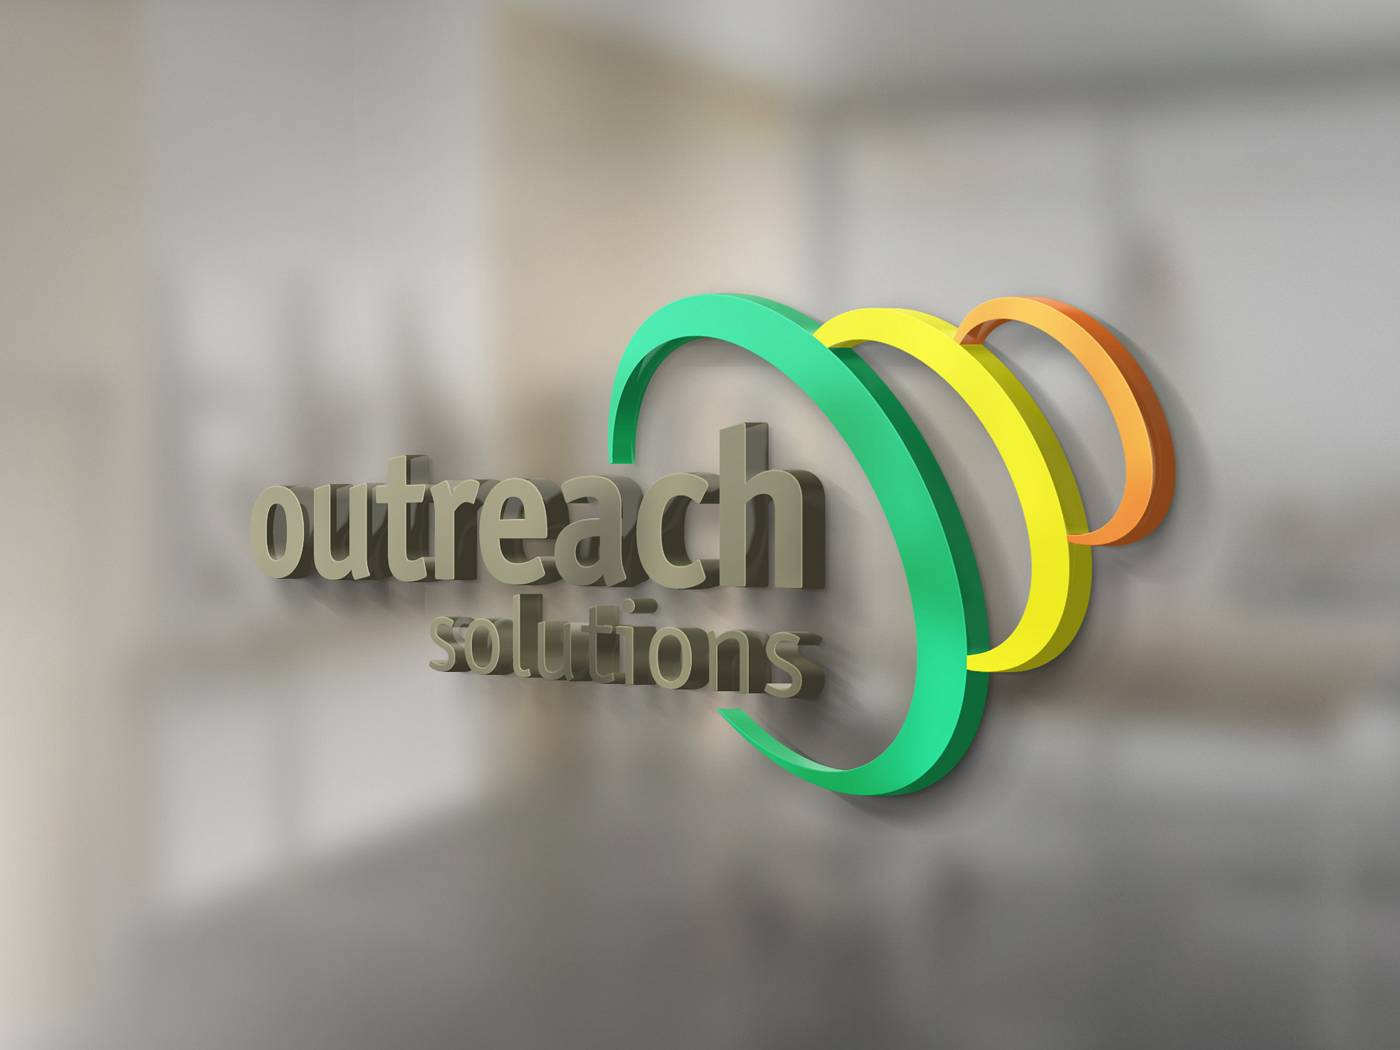 Outreach Solutions